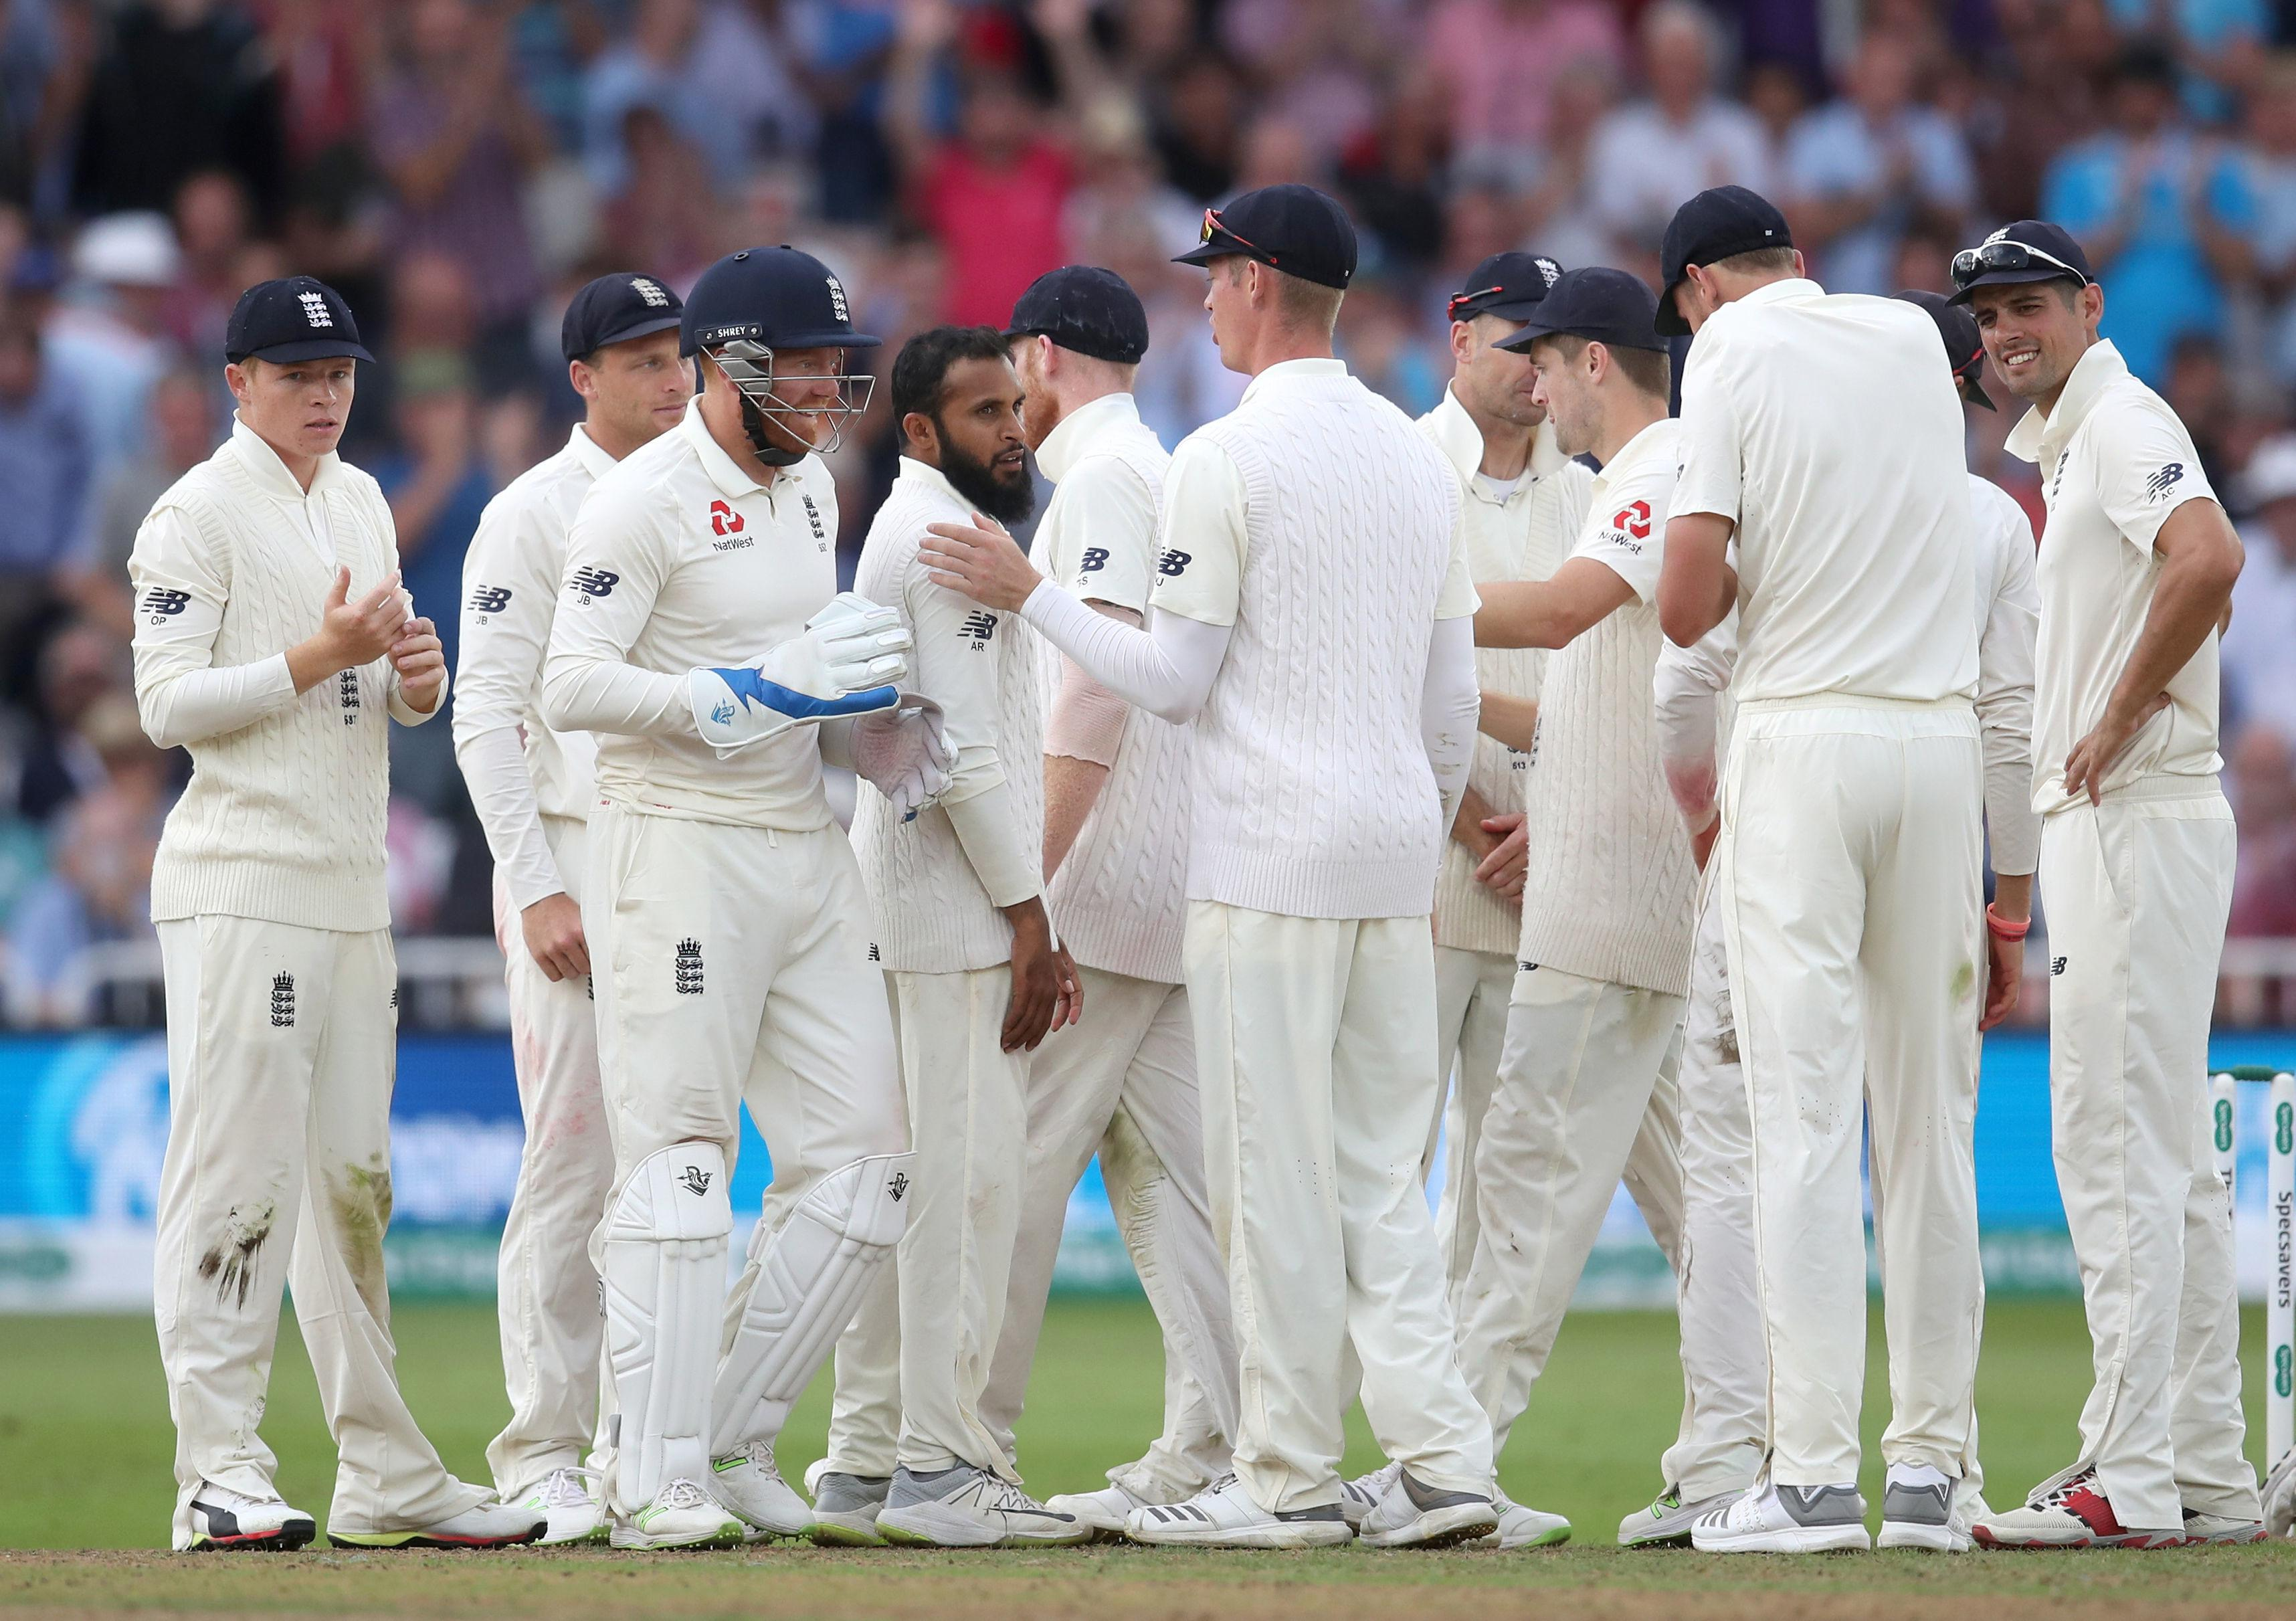 England managed to take six wickets on the opening day at Trent Bridge